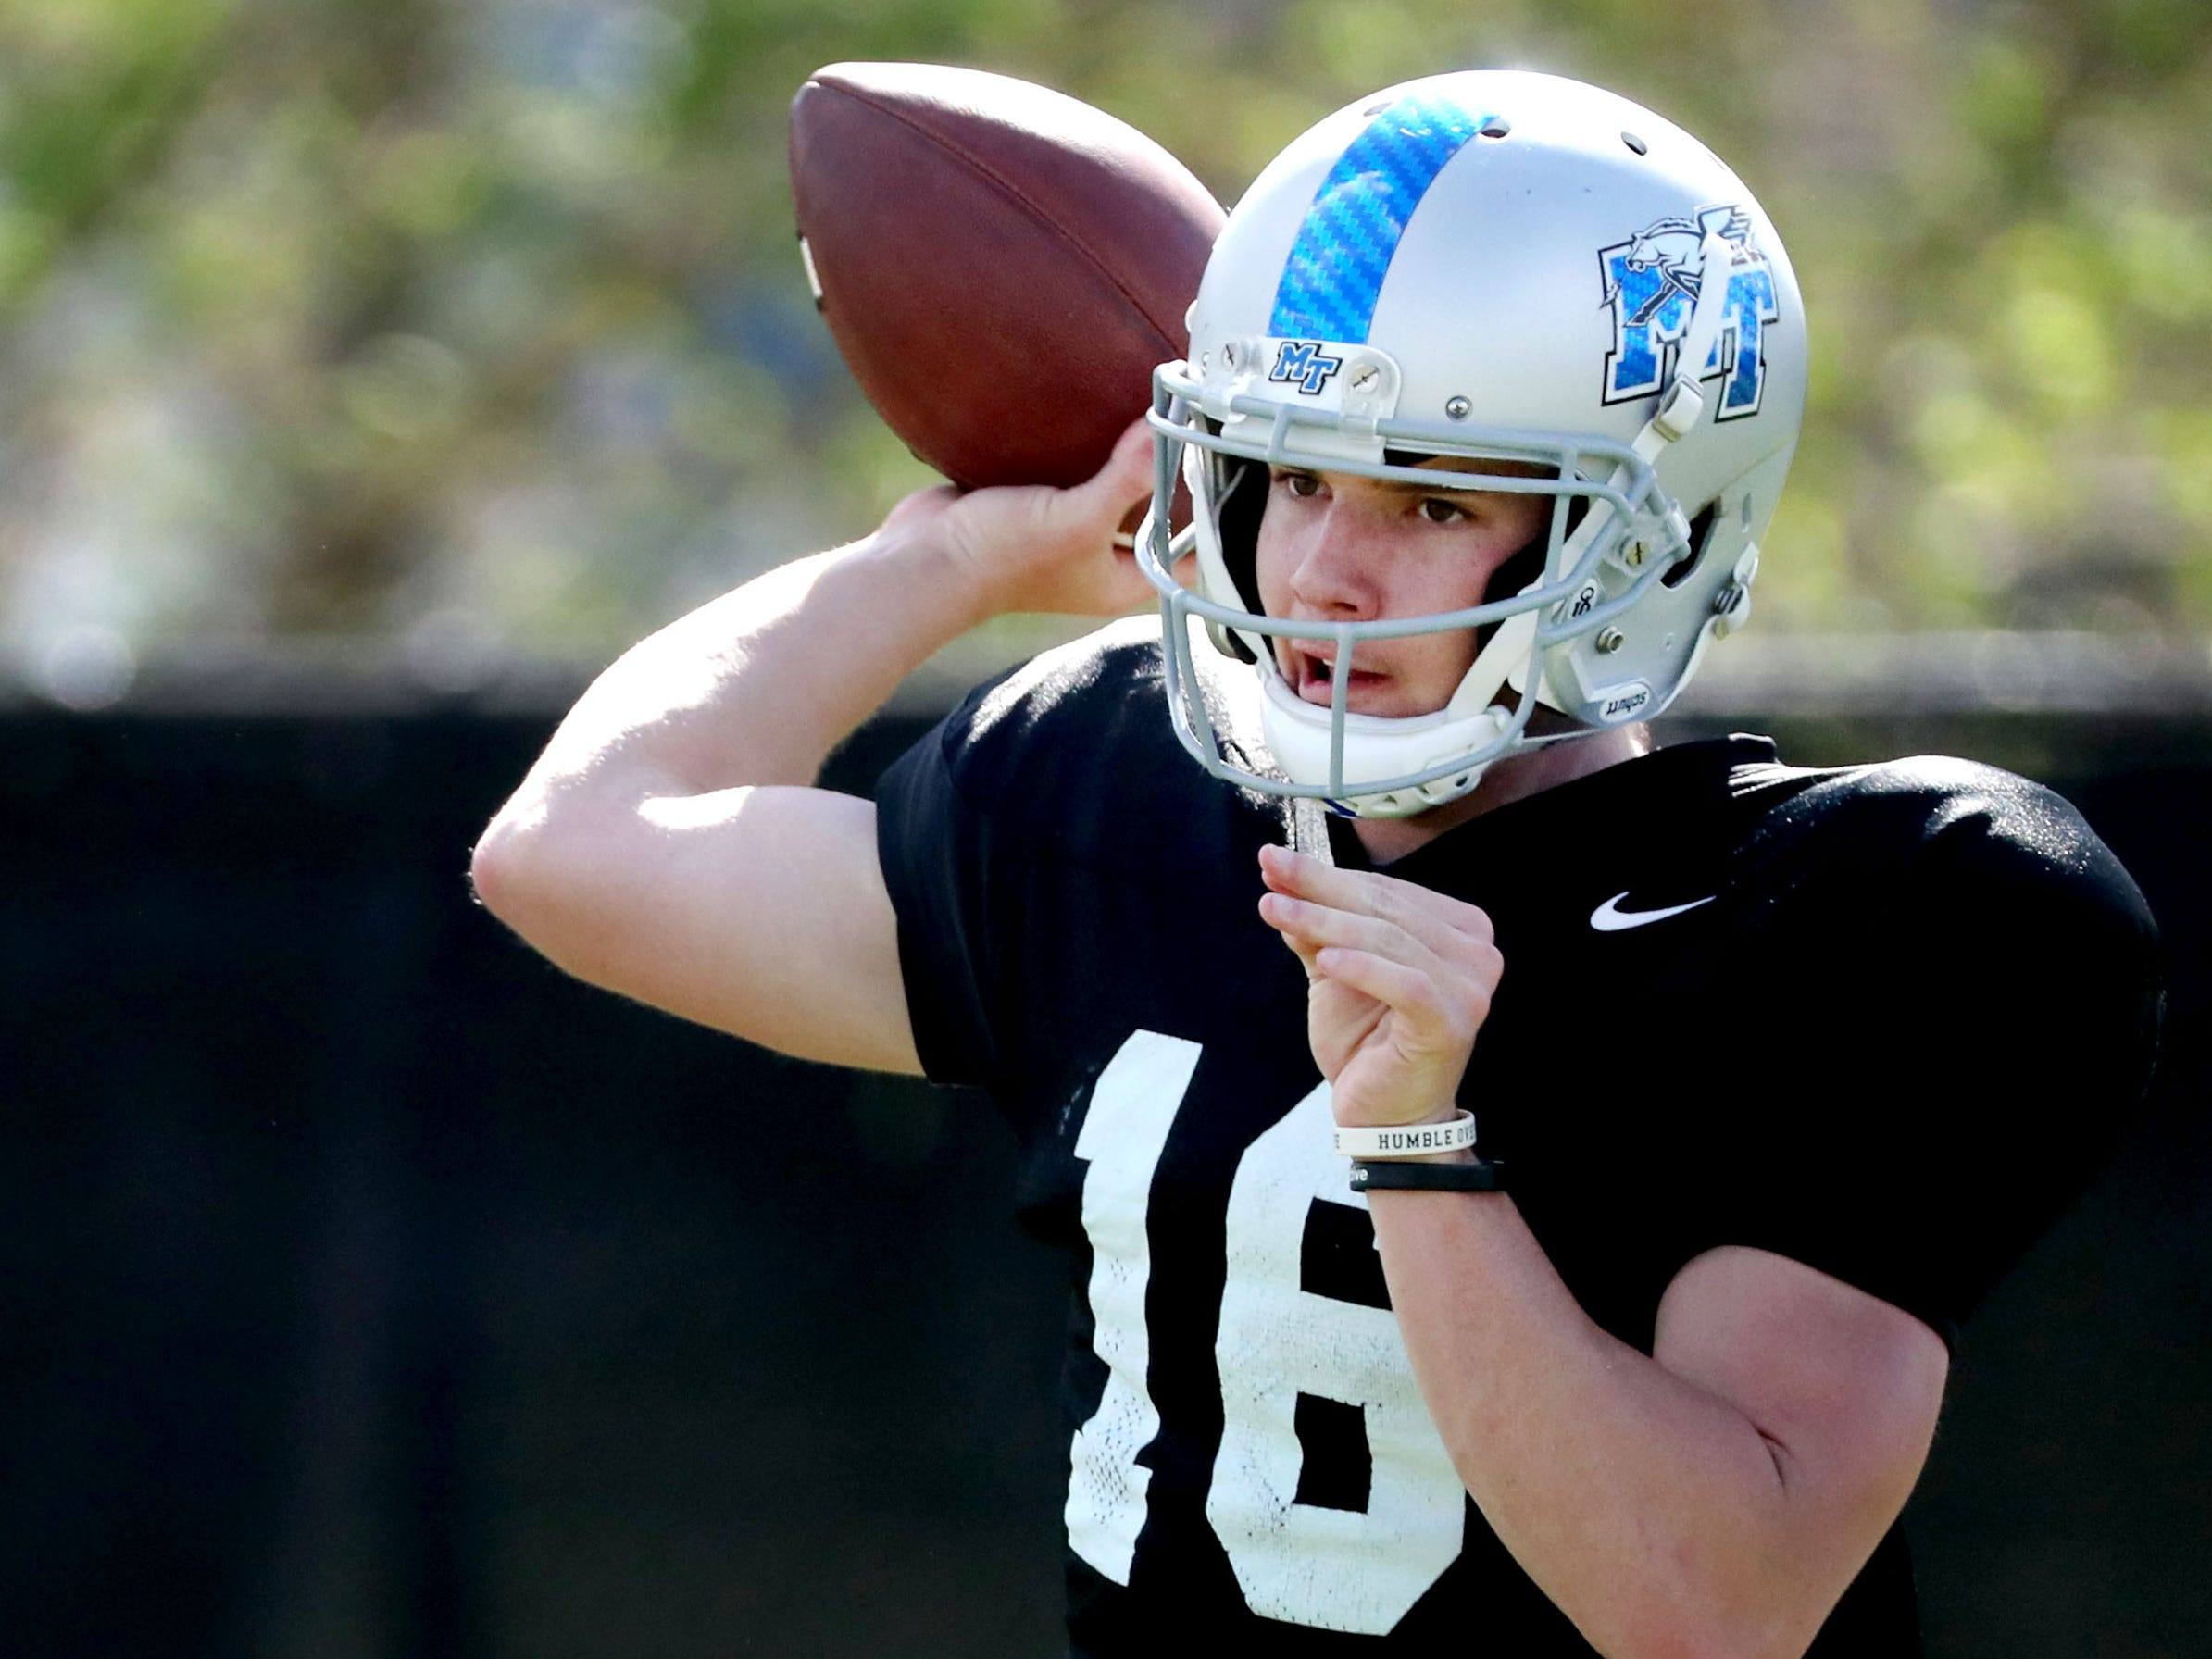 MTSU's quarterback Chase Cunningham (16) passes the ball during MTSU's football practice, in Murfreesboro on Tuesday April 9, 2019.